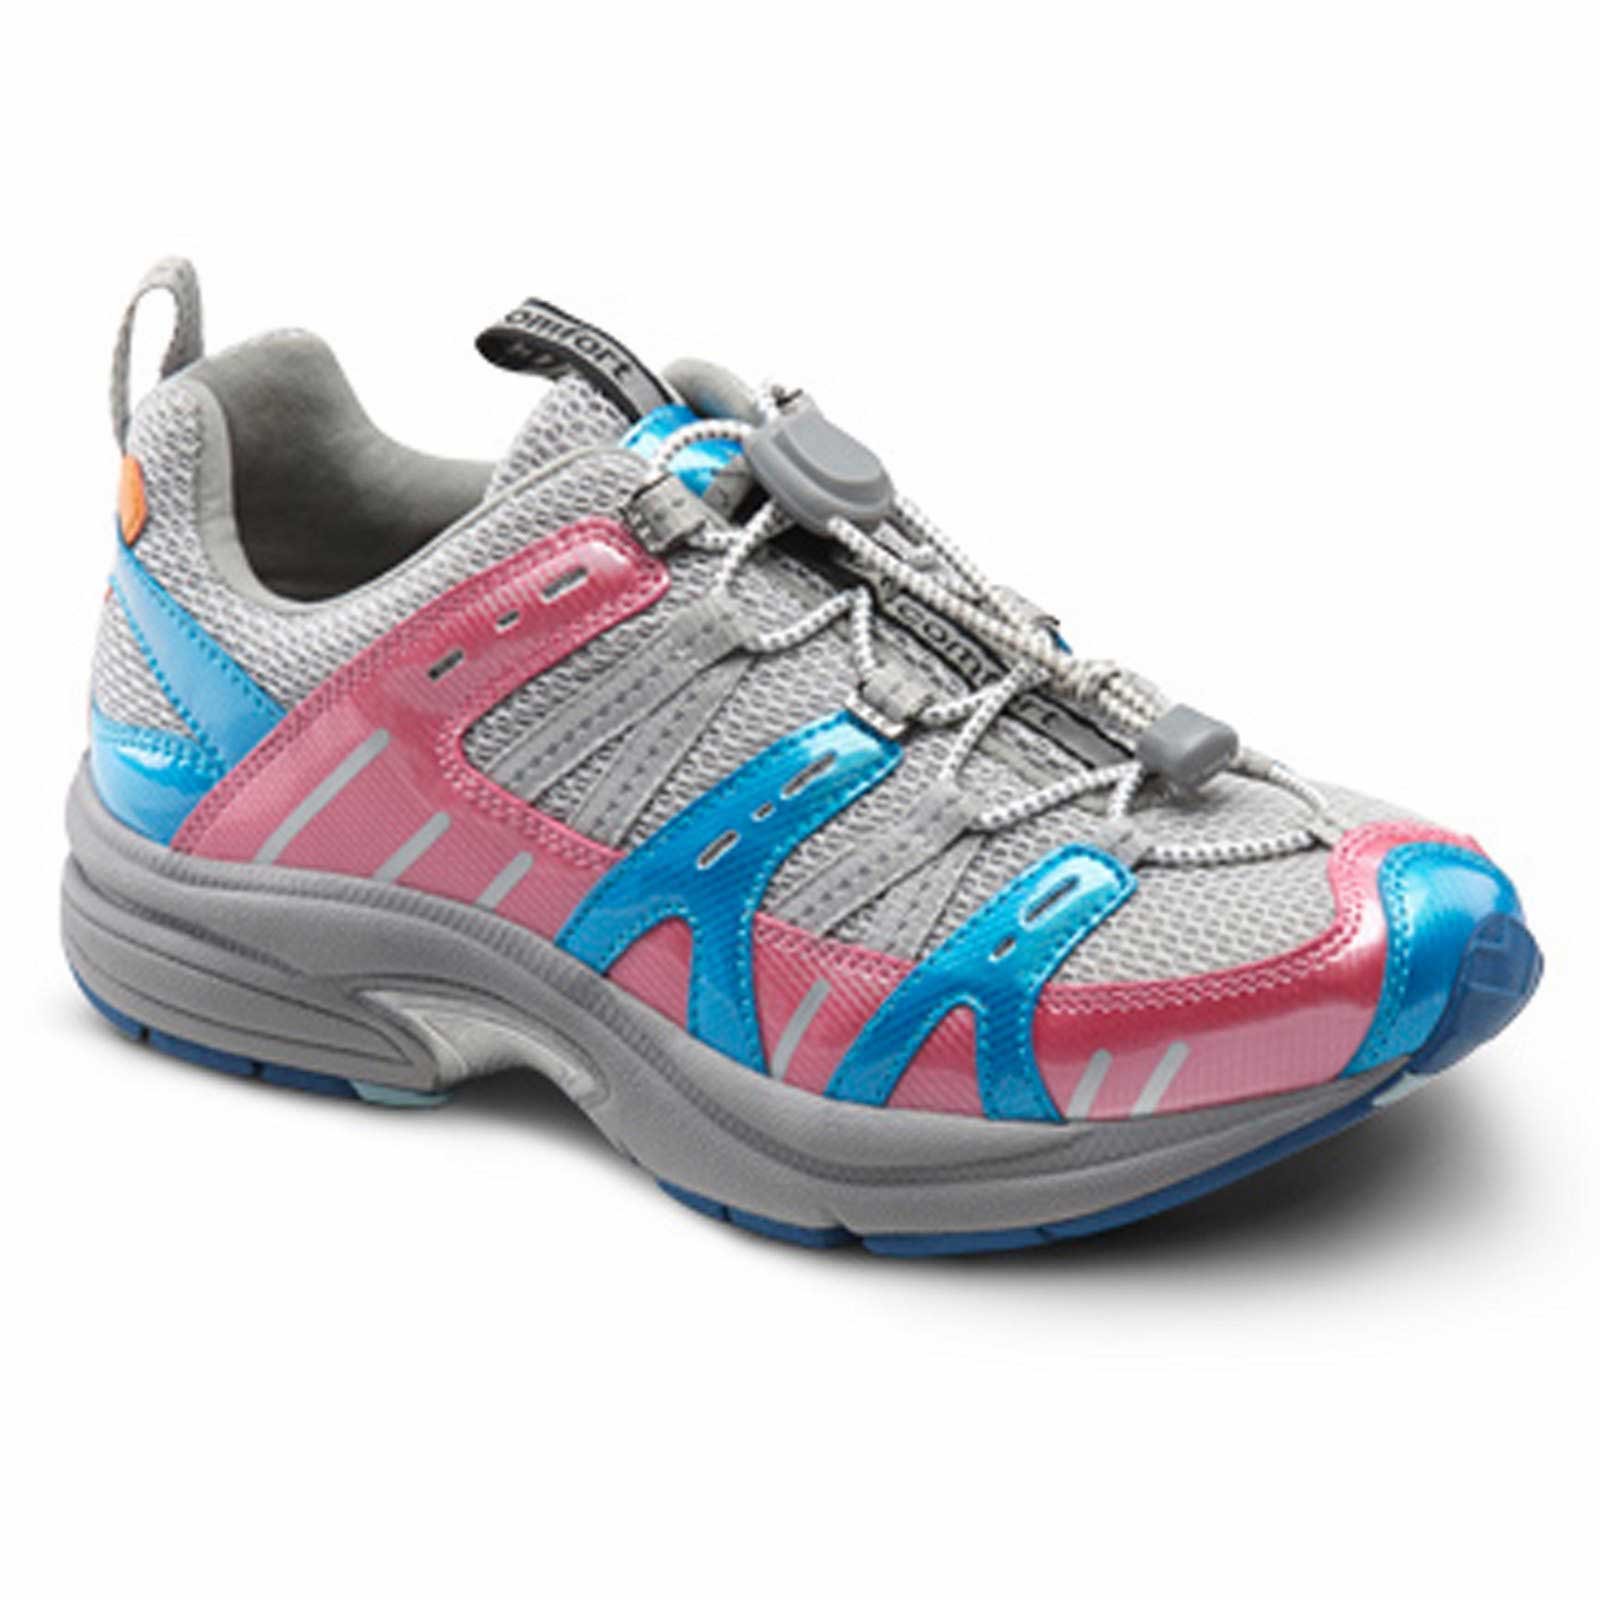 about Dr Comfort Refresh Women s Therapeutic Diabetic Extra Depth Shoe